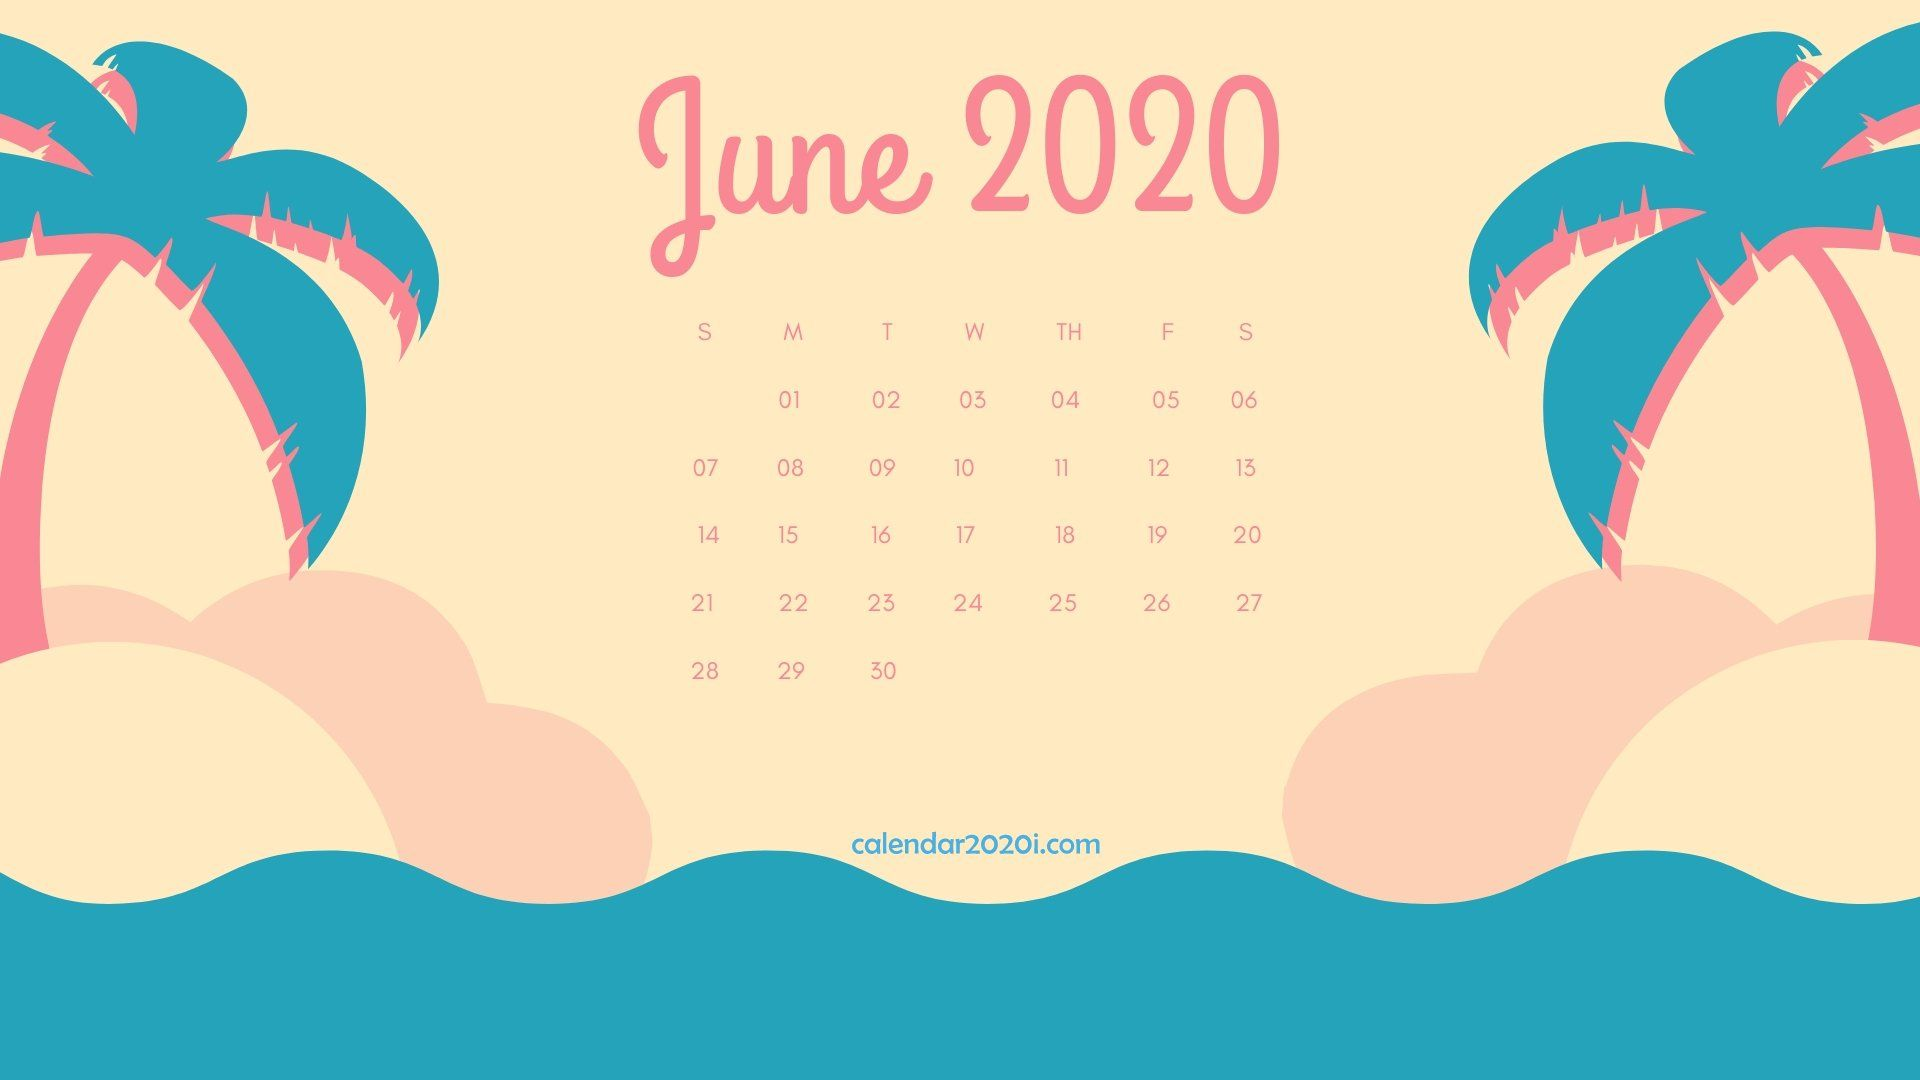 June 2020 Calendar Desktop Wallpaper in 2019 Calendar wallpaper 1920x1080